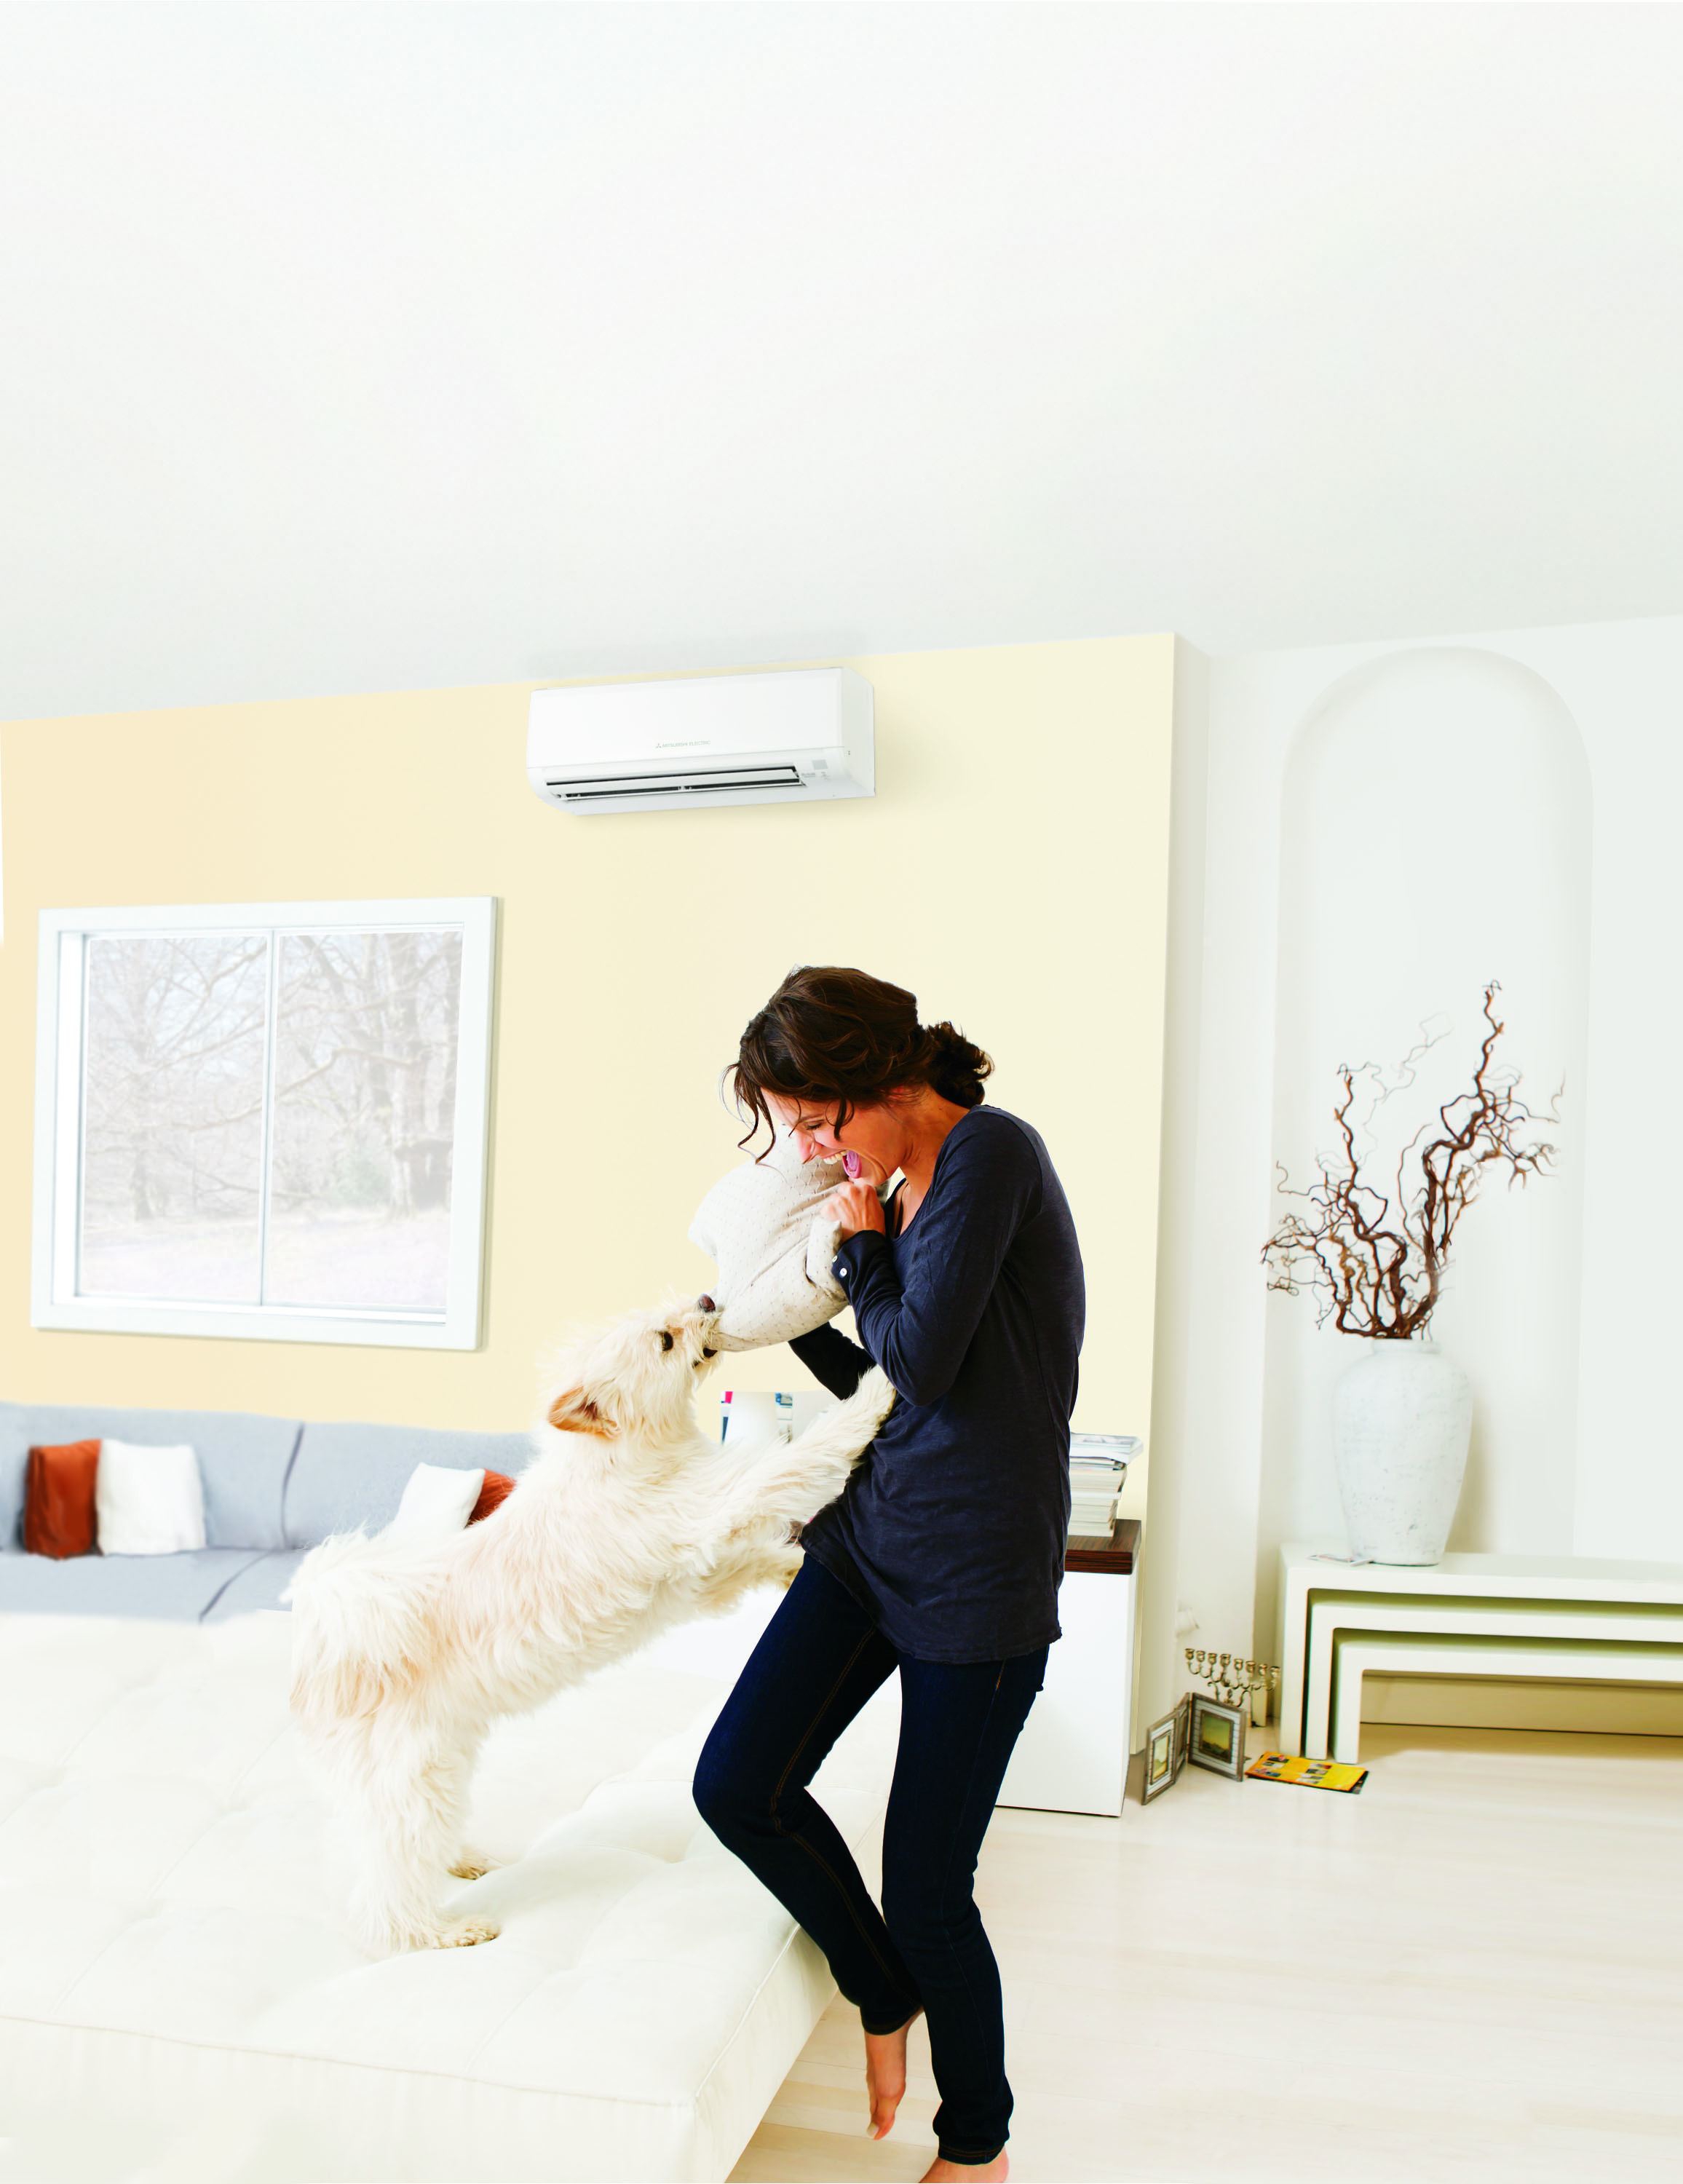 save on a new mitsubishi electric ac with a 400 rebate